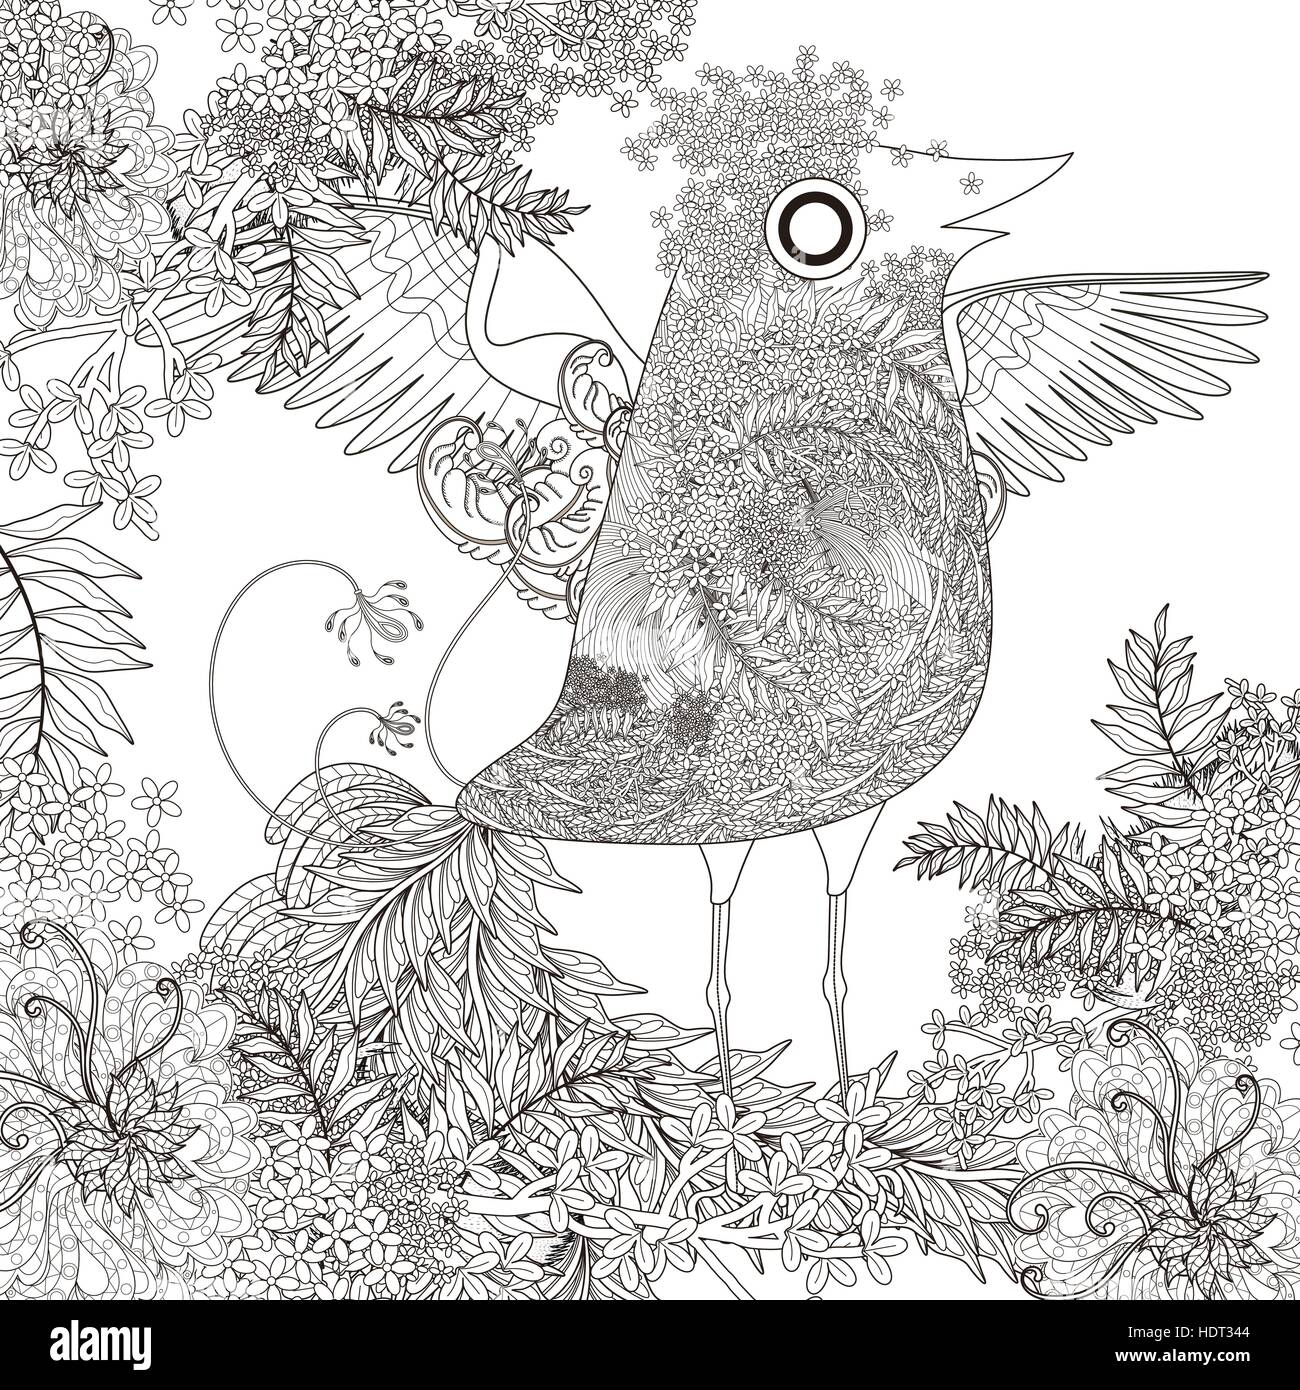 Adult Coloring Page Adorable Bird Stockfotos Adult Coloring Page